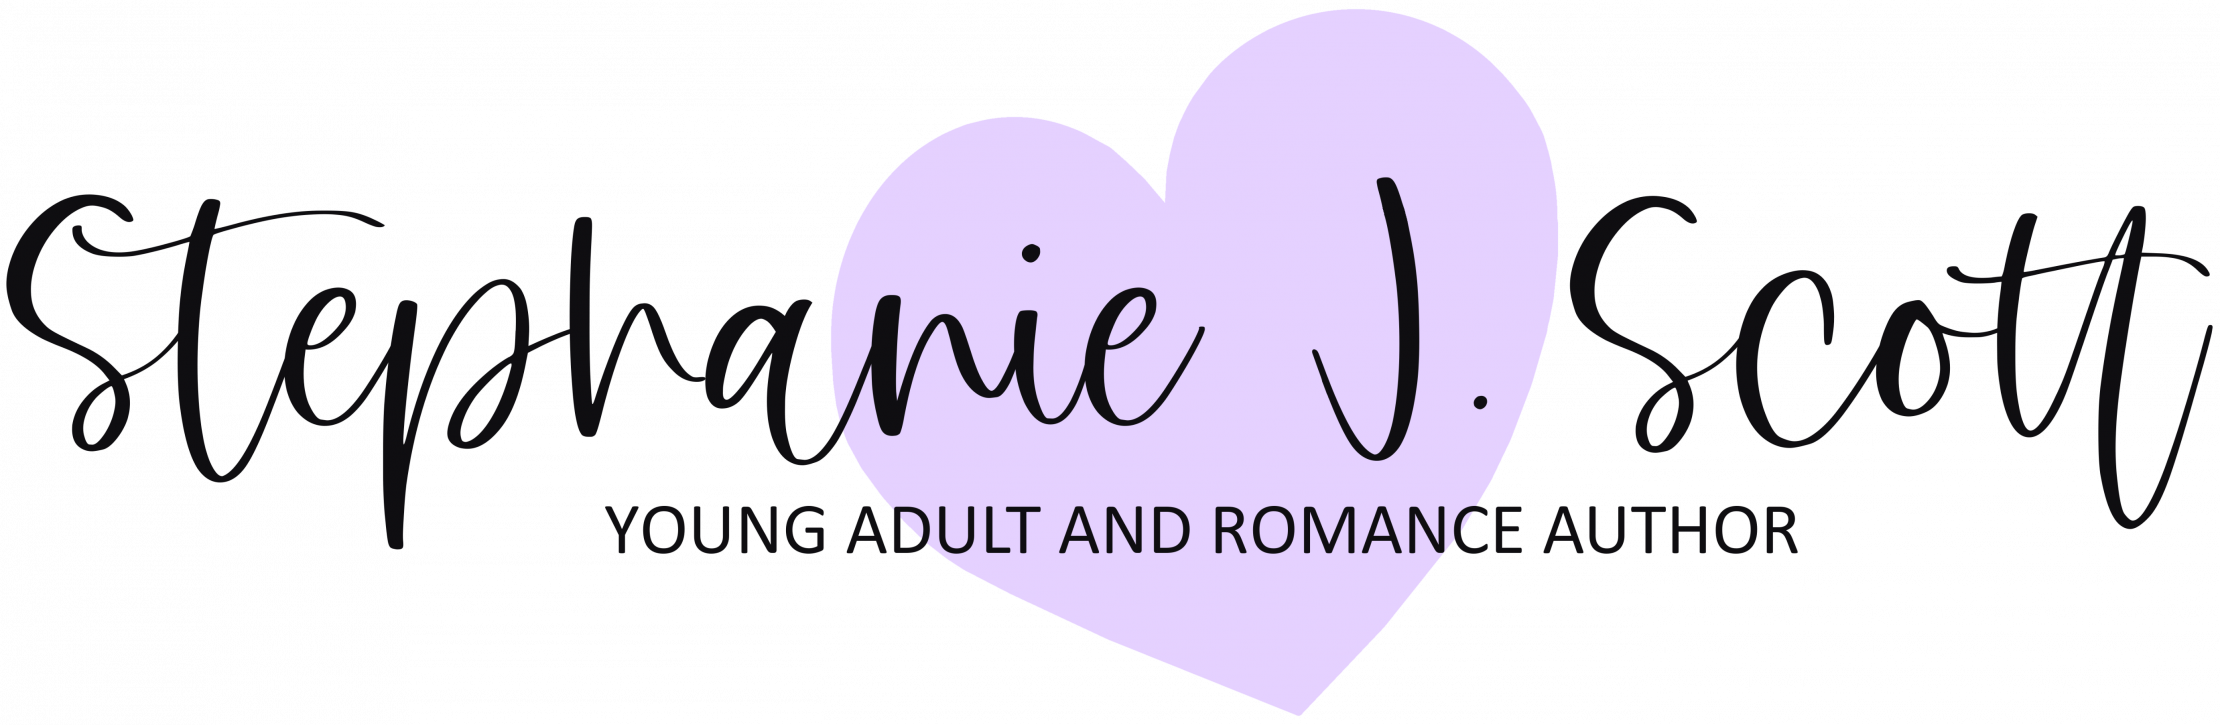 Stephanie J. Scott Young Adult and Romance Author